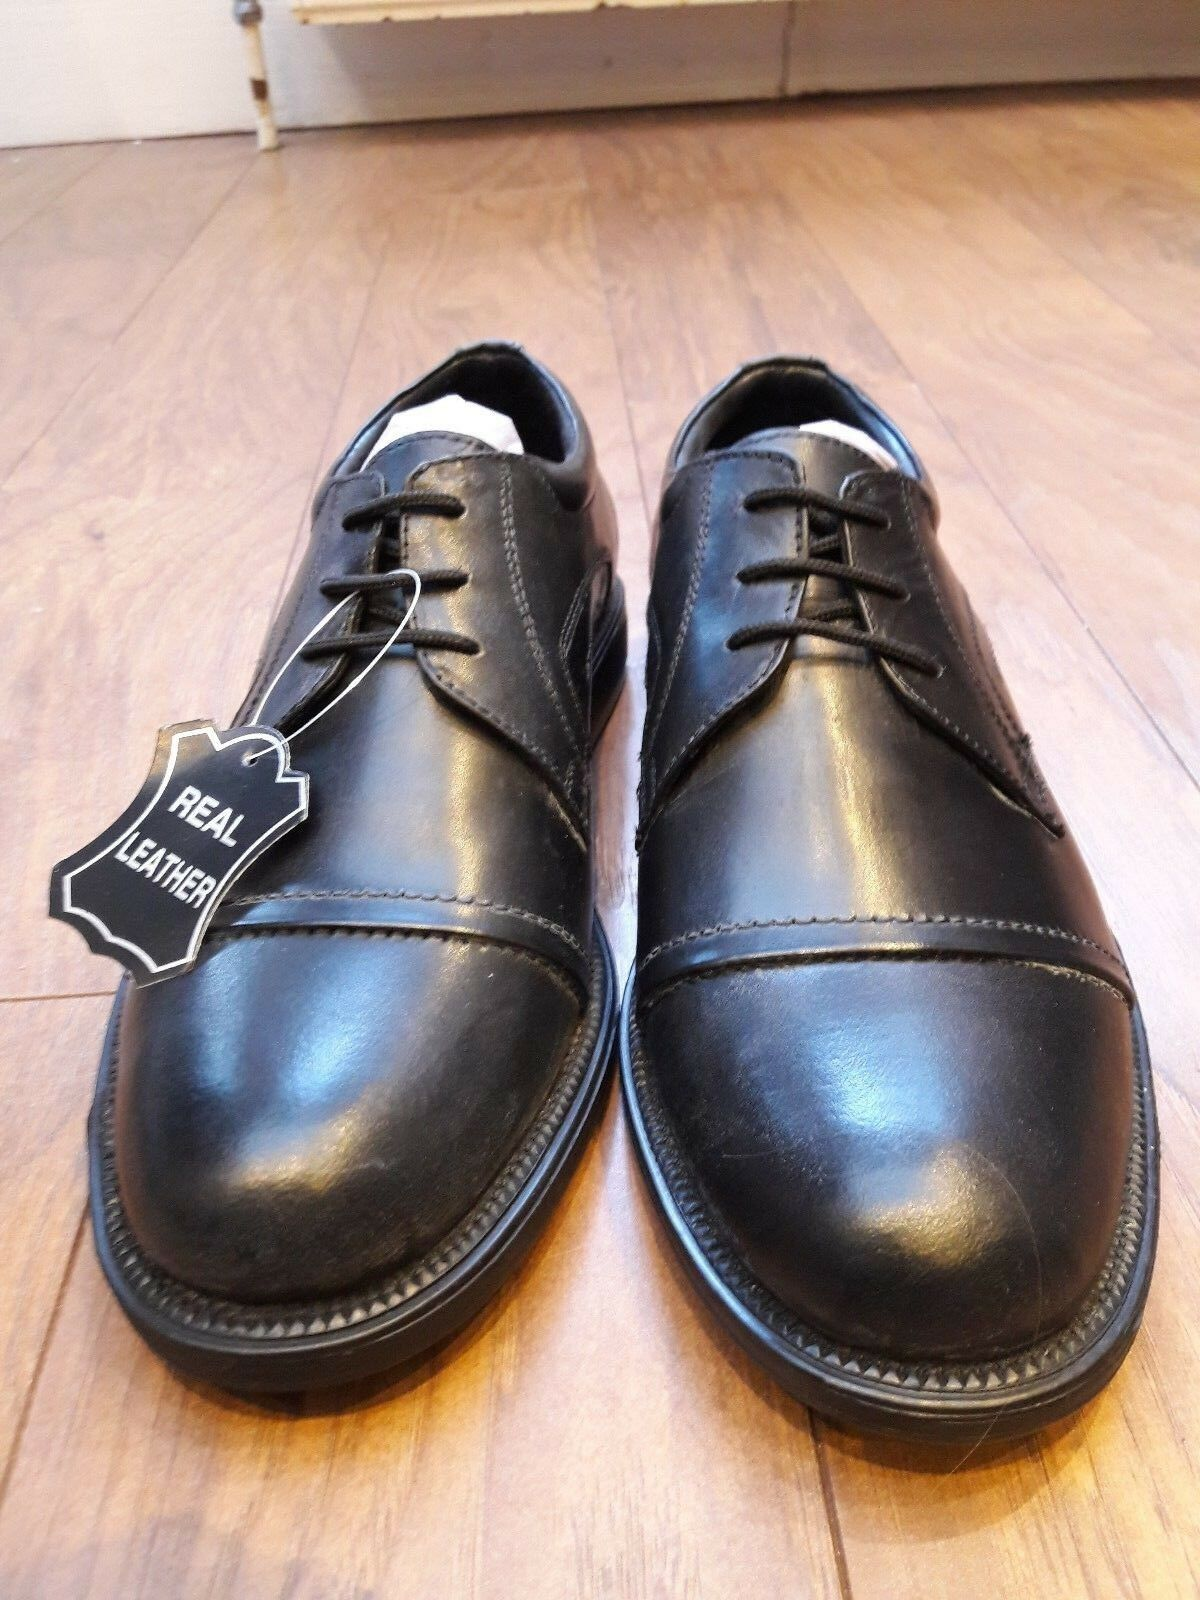 Luca Puccini black leather shoes